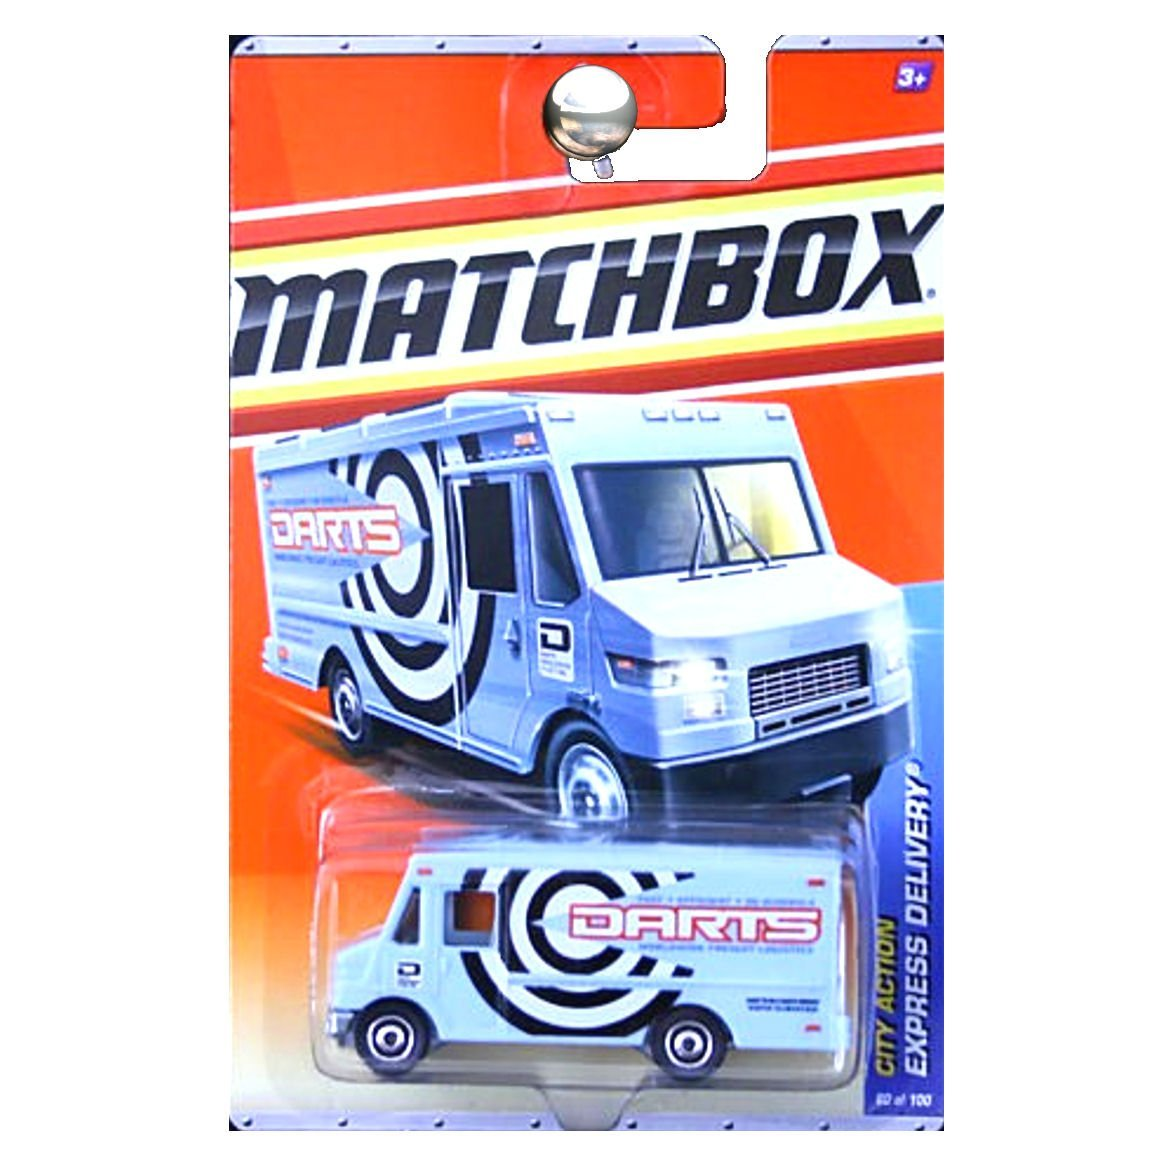 2011 City Action Express Delivery Speedy Van DARTS Blue #60, 1:64 By Matchbox by